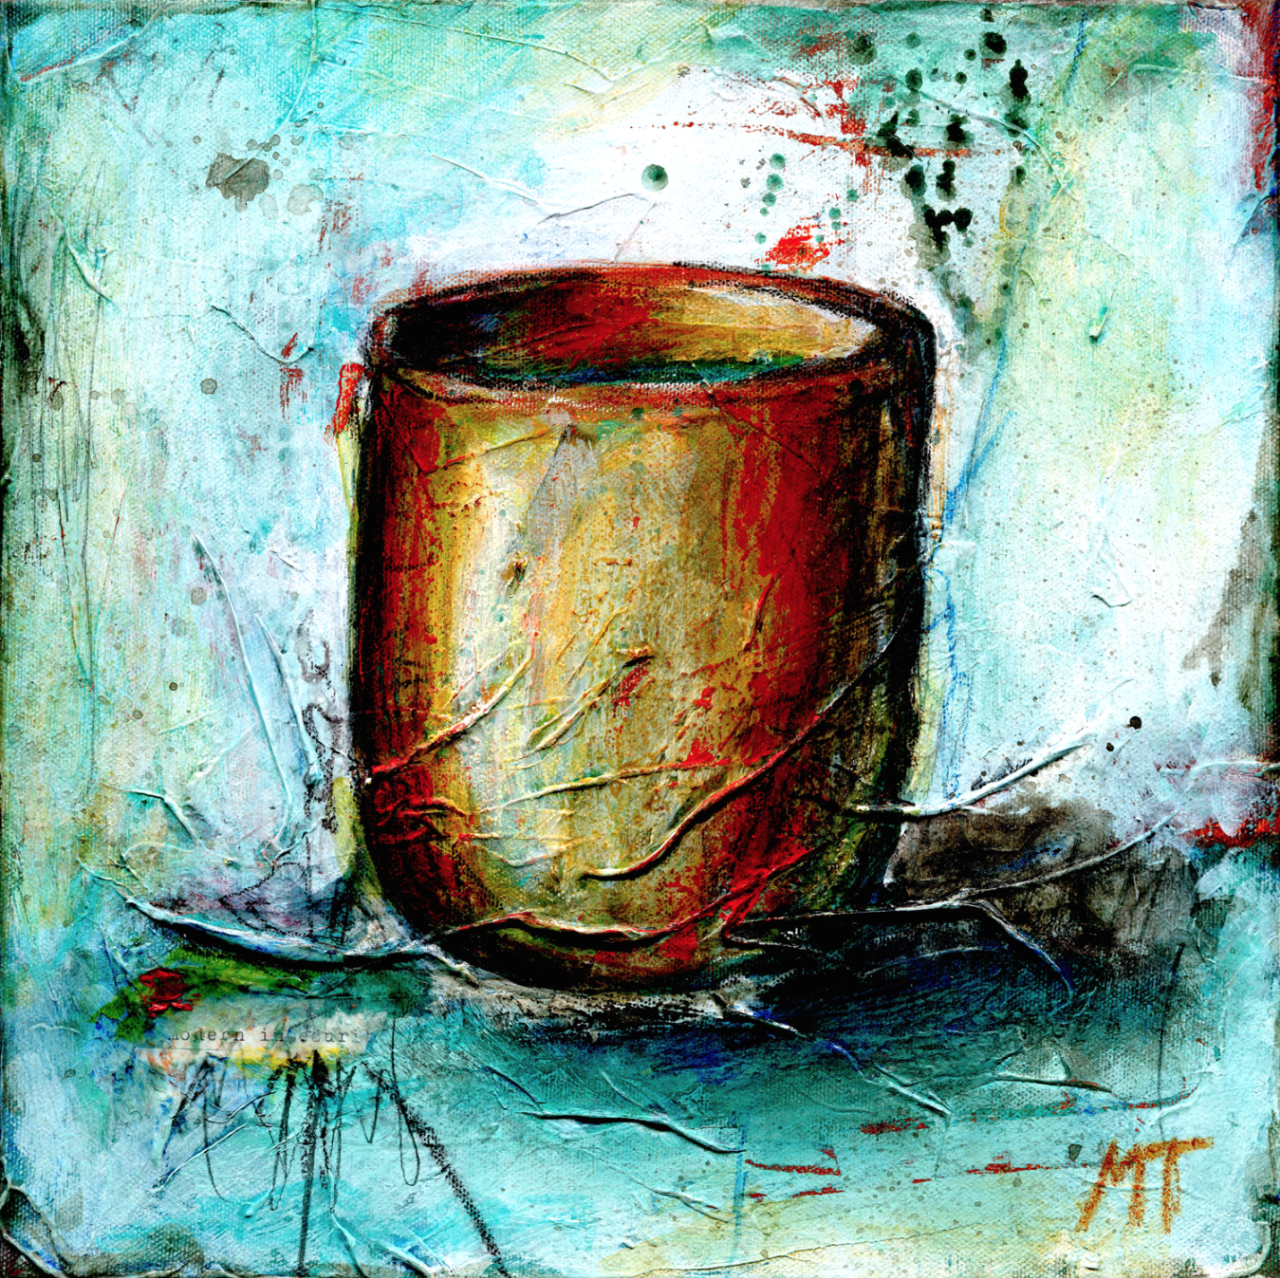 modern_mandy_thompson_abstract_art_cup.jpg